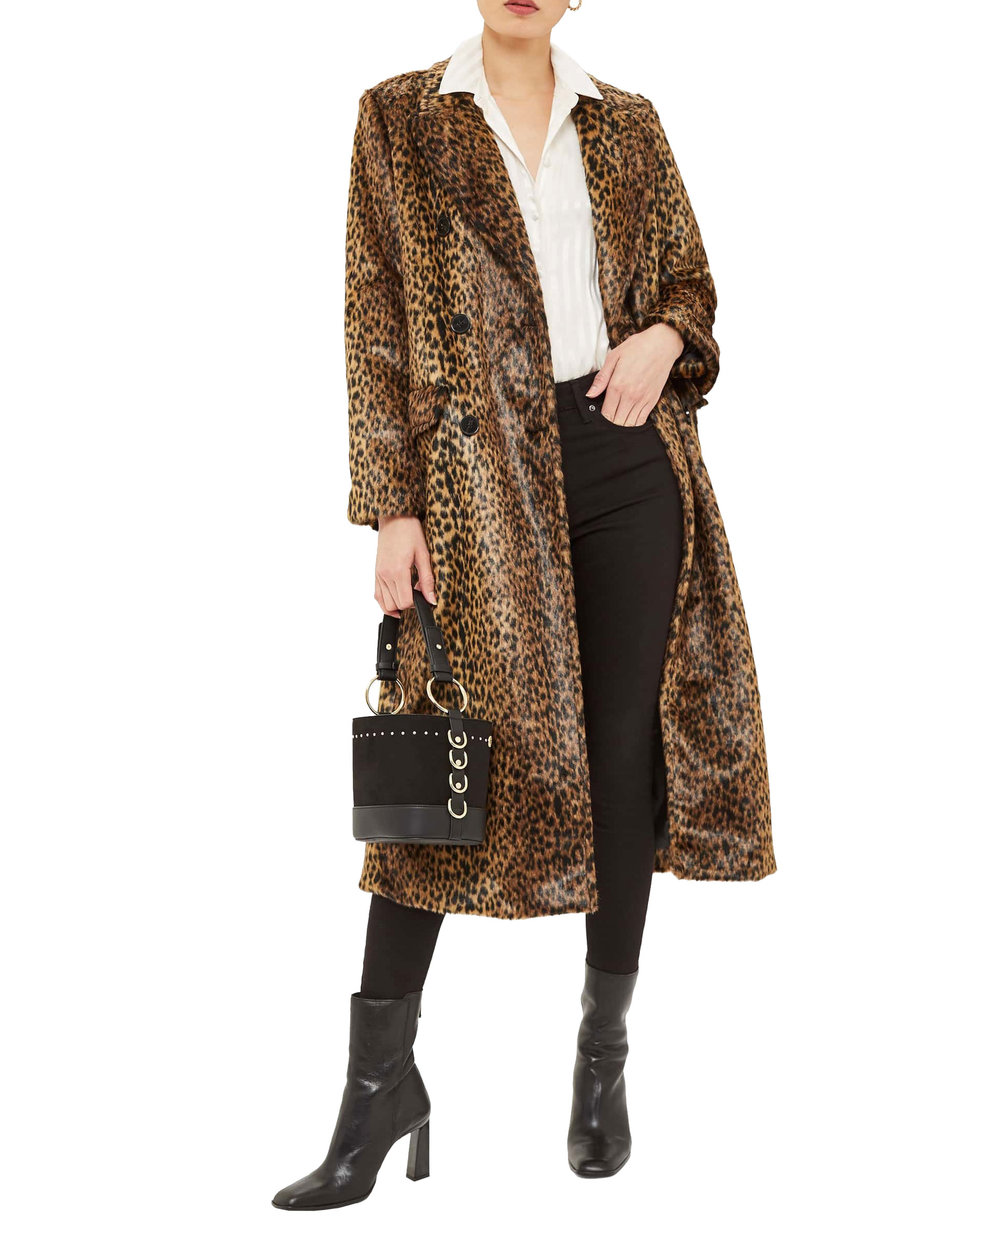 Top Shop Leopard Coat     $210